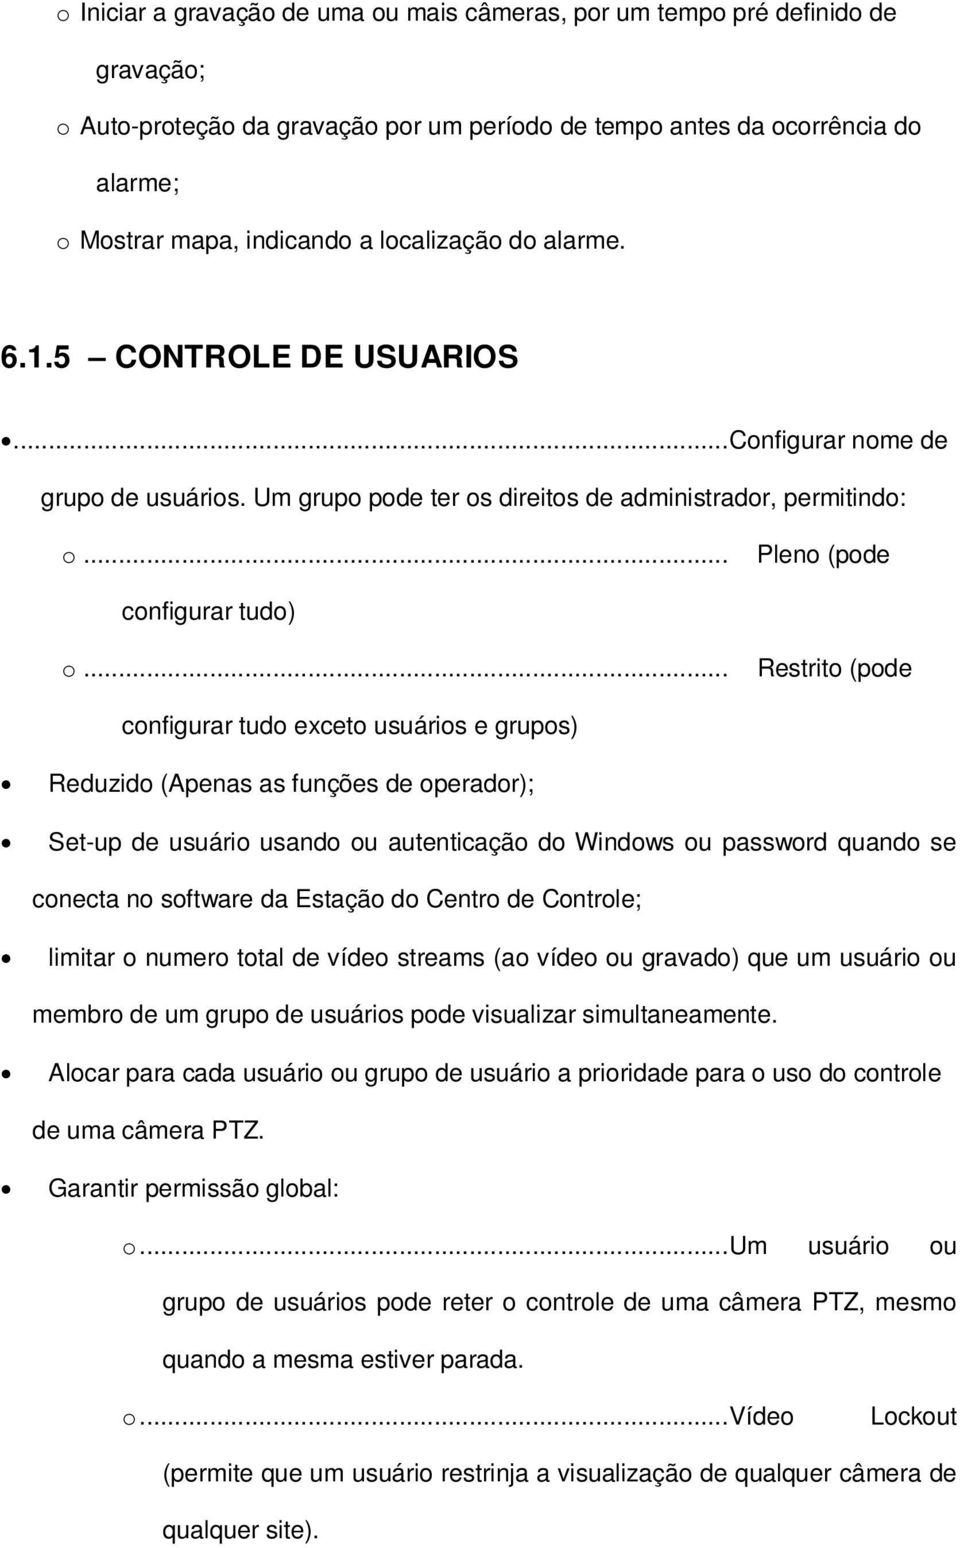 .. Restrito (pode configurar tudo exceto usuários e grupos) Reduzido (Apenas as funções de operador); Set-up de usuário usando ou autenticação do Windows ou password quando se conecta no software da